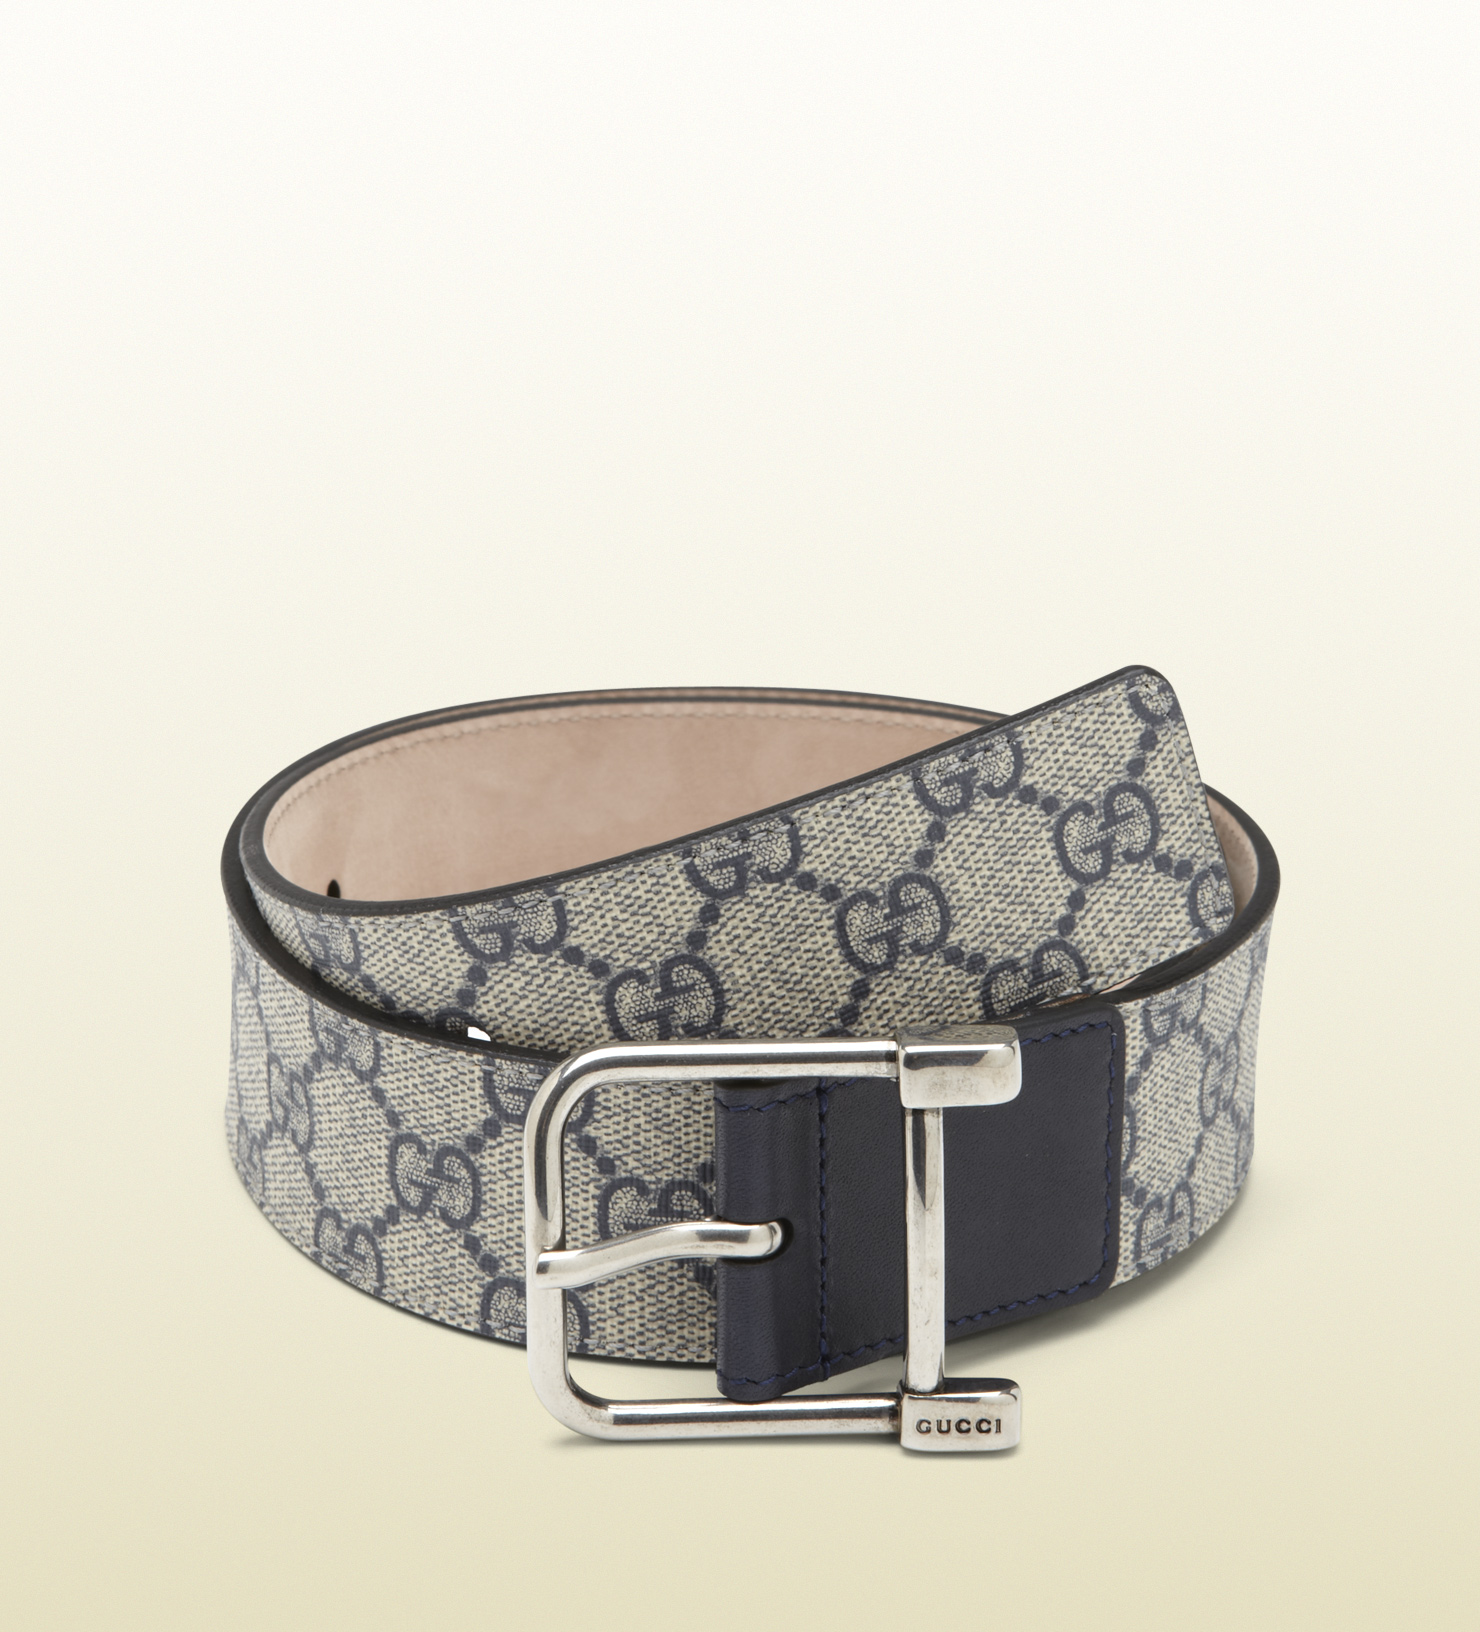 gucci original gg canvas belt with spur buckle in blue